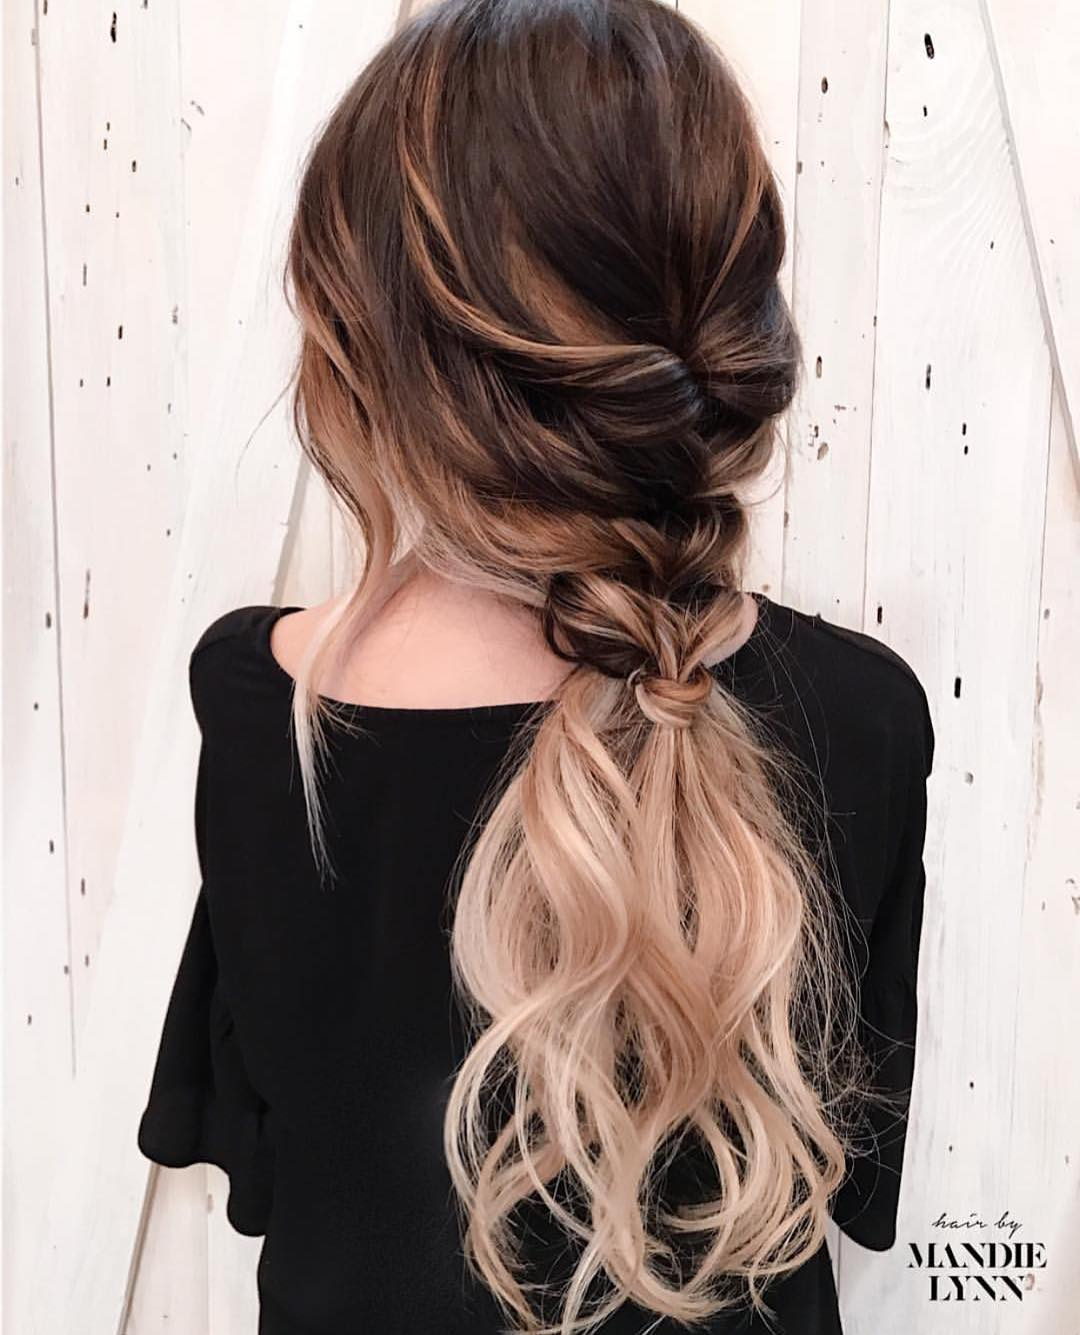 10 Trendiest Ponytail Hairstyles for Long Hair 2020 - Easy Ponytails